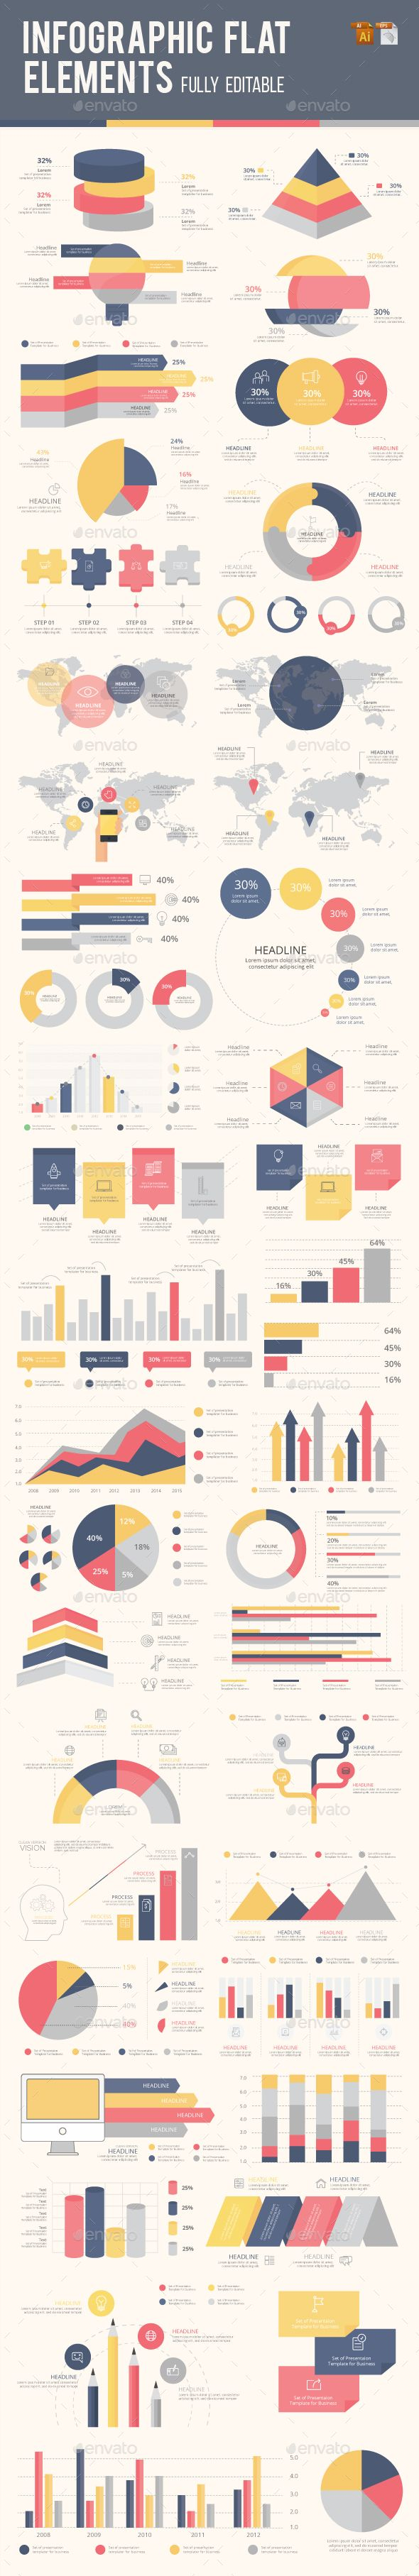 Best Infographic Flat Elements Template Vector EPS, AI Illustrator